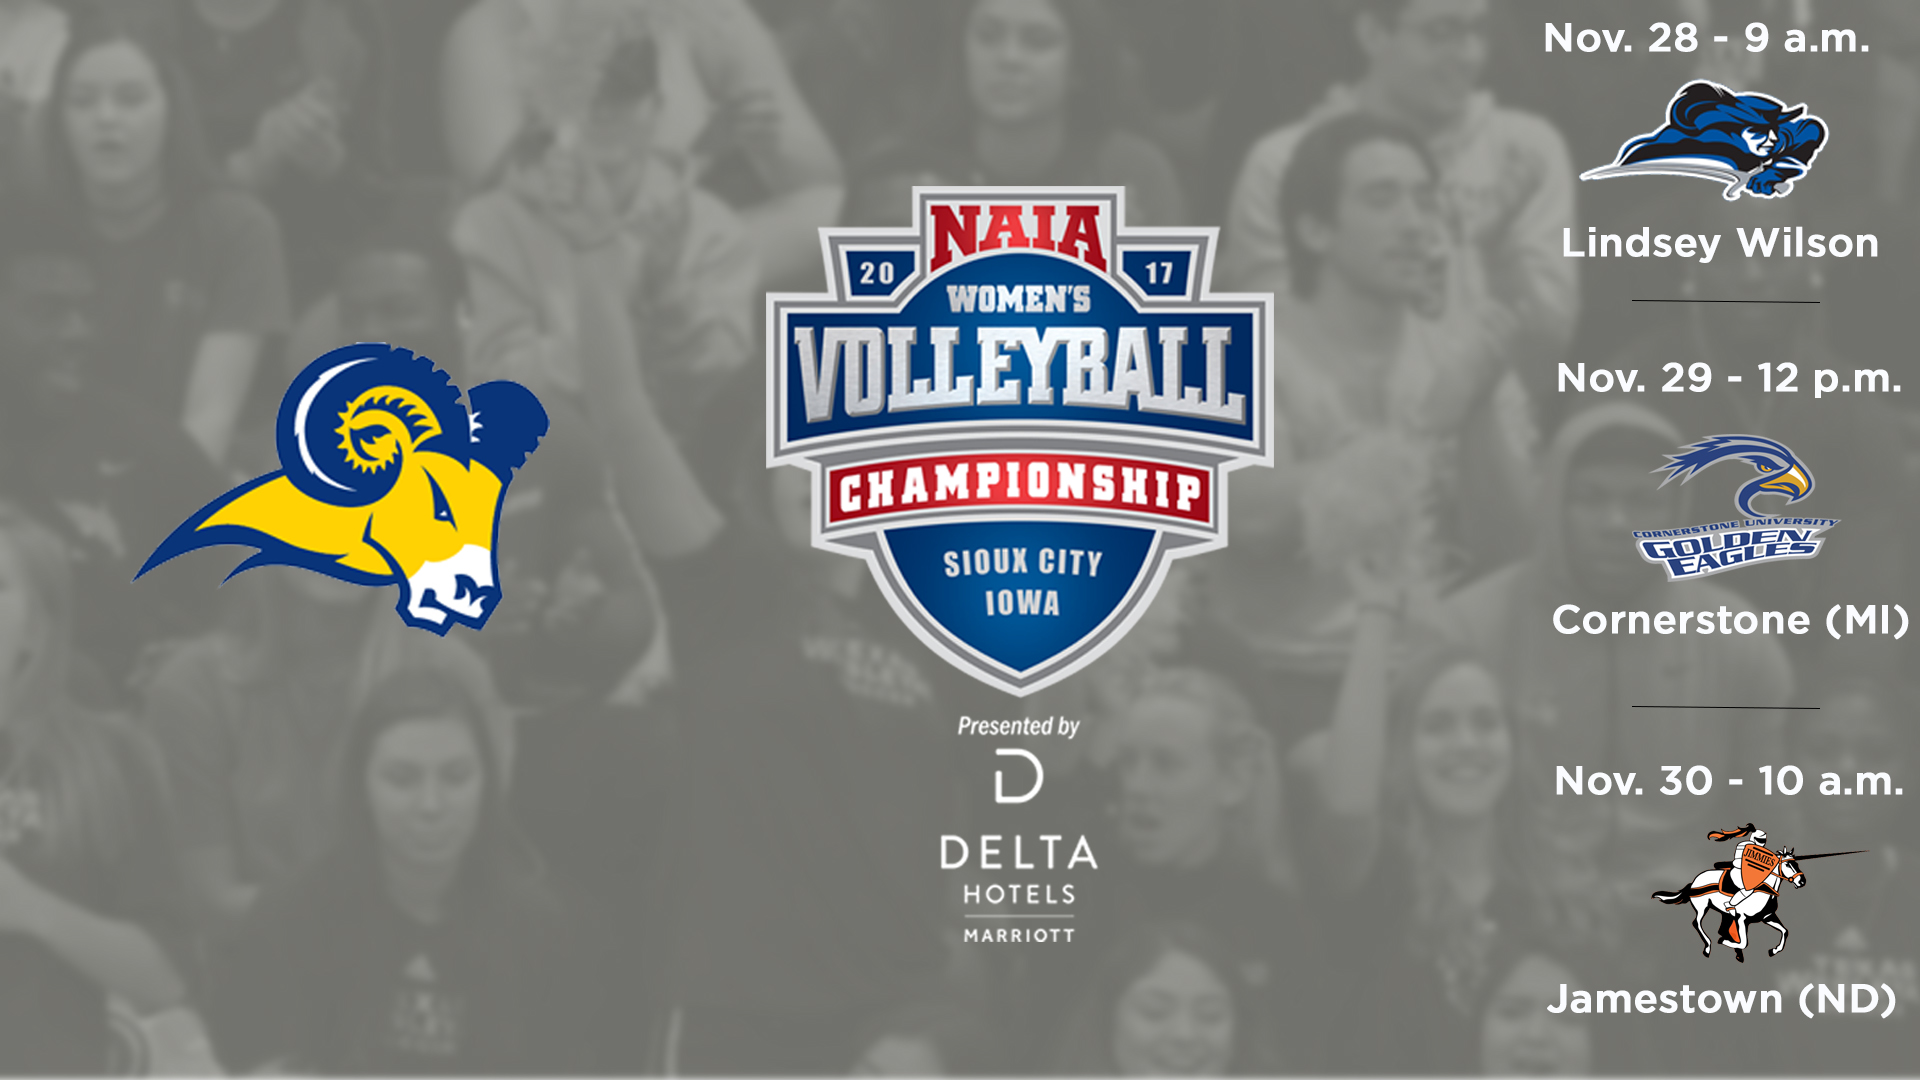 Pool Play Schedule Announced For 2017 NAIA Women's Volleyball